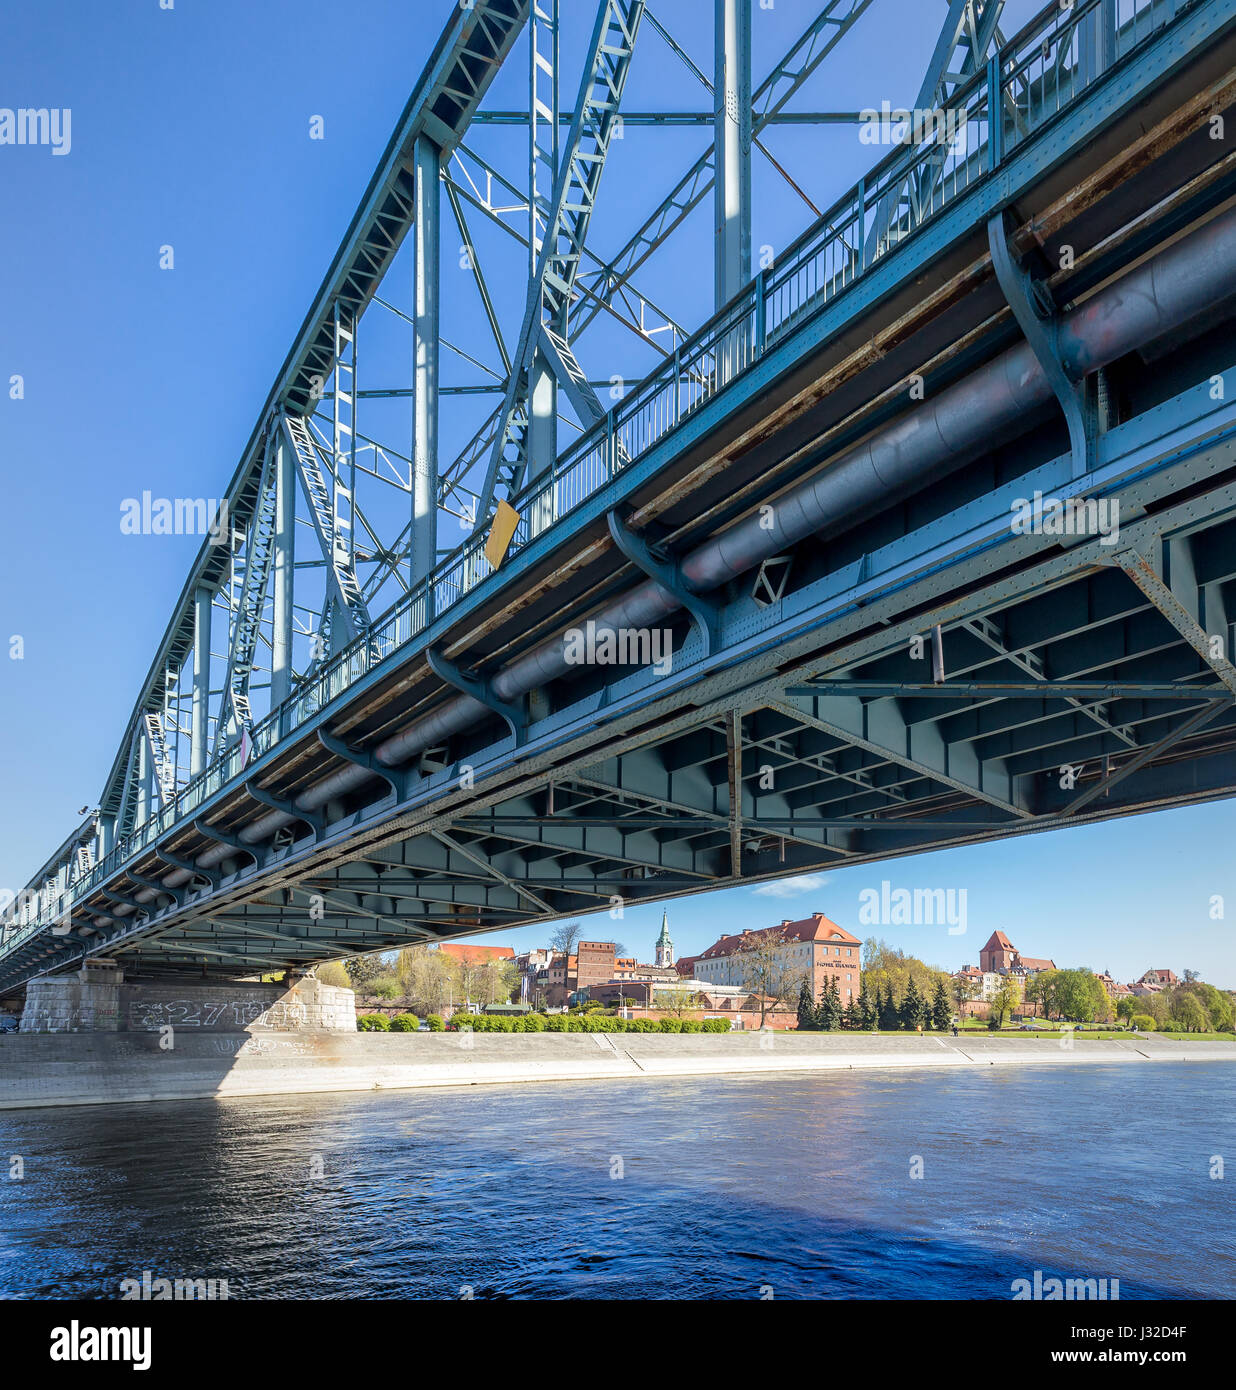 Arcged span bridge and view at Old City in Torun, Poland. - Stock Image